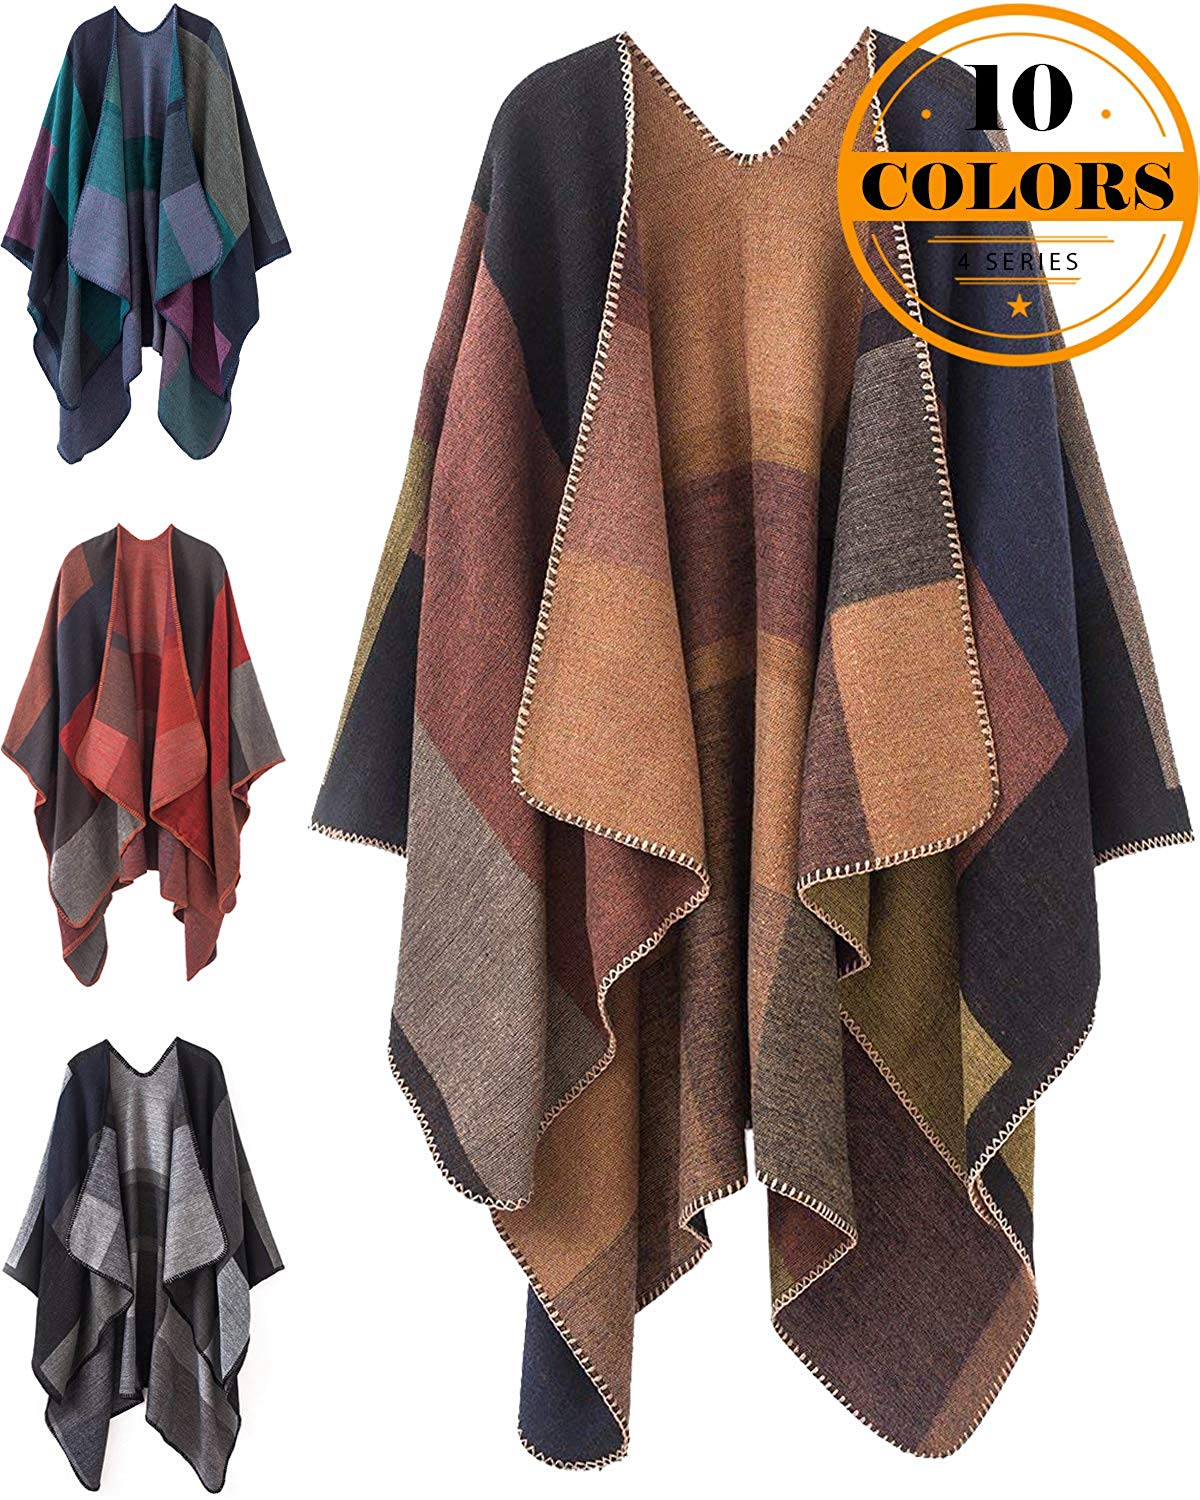 8a7343db2 Get Quotations · KirGiabo Women's Color Block Shawl Wrap,Plus Size Cardigan Poncho  Cape,Open Front Long